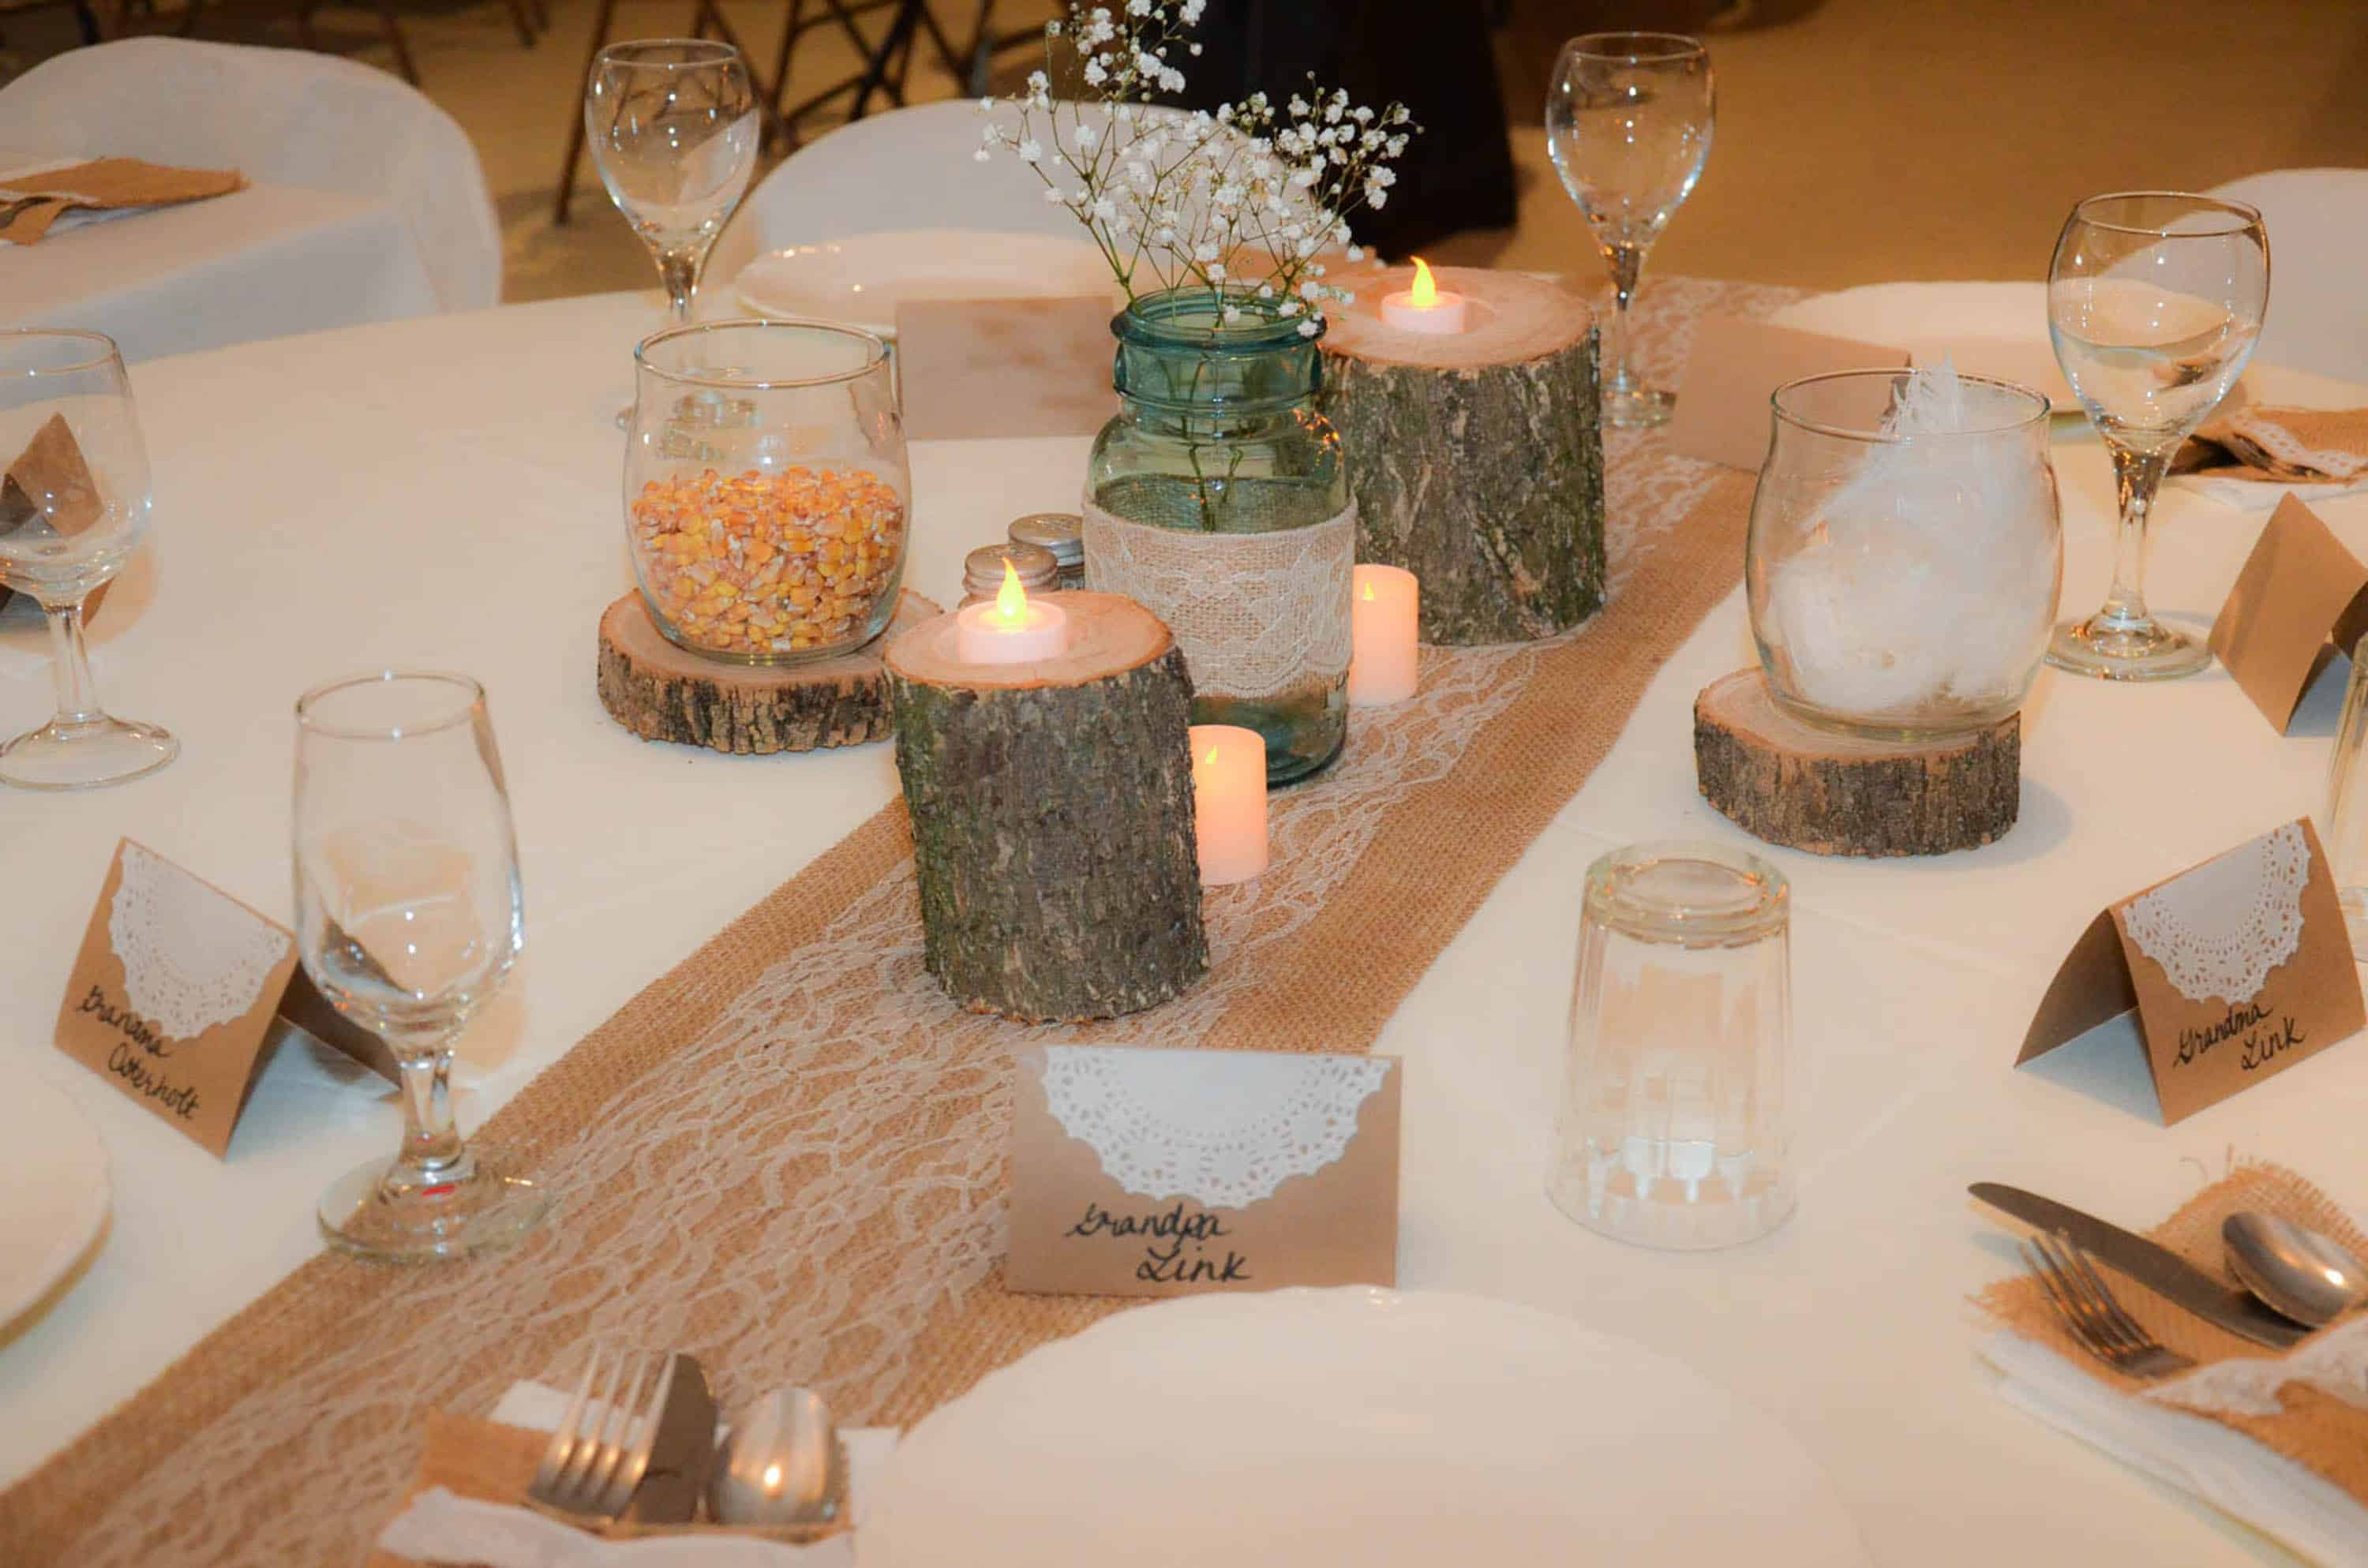 burlap decorating ideas for weddings burlap and lace country wedding decorations plowing 2137